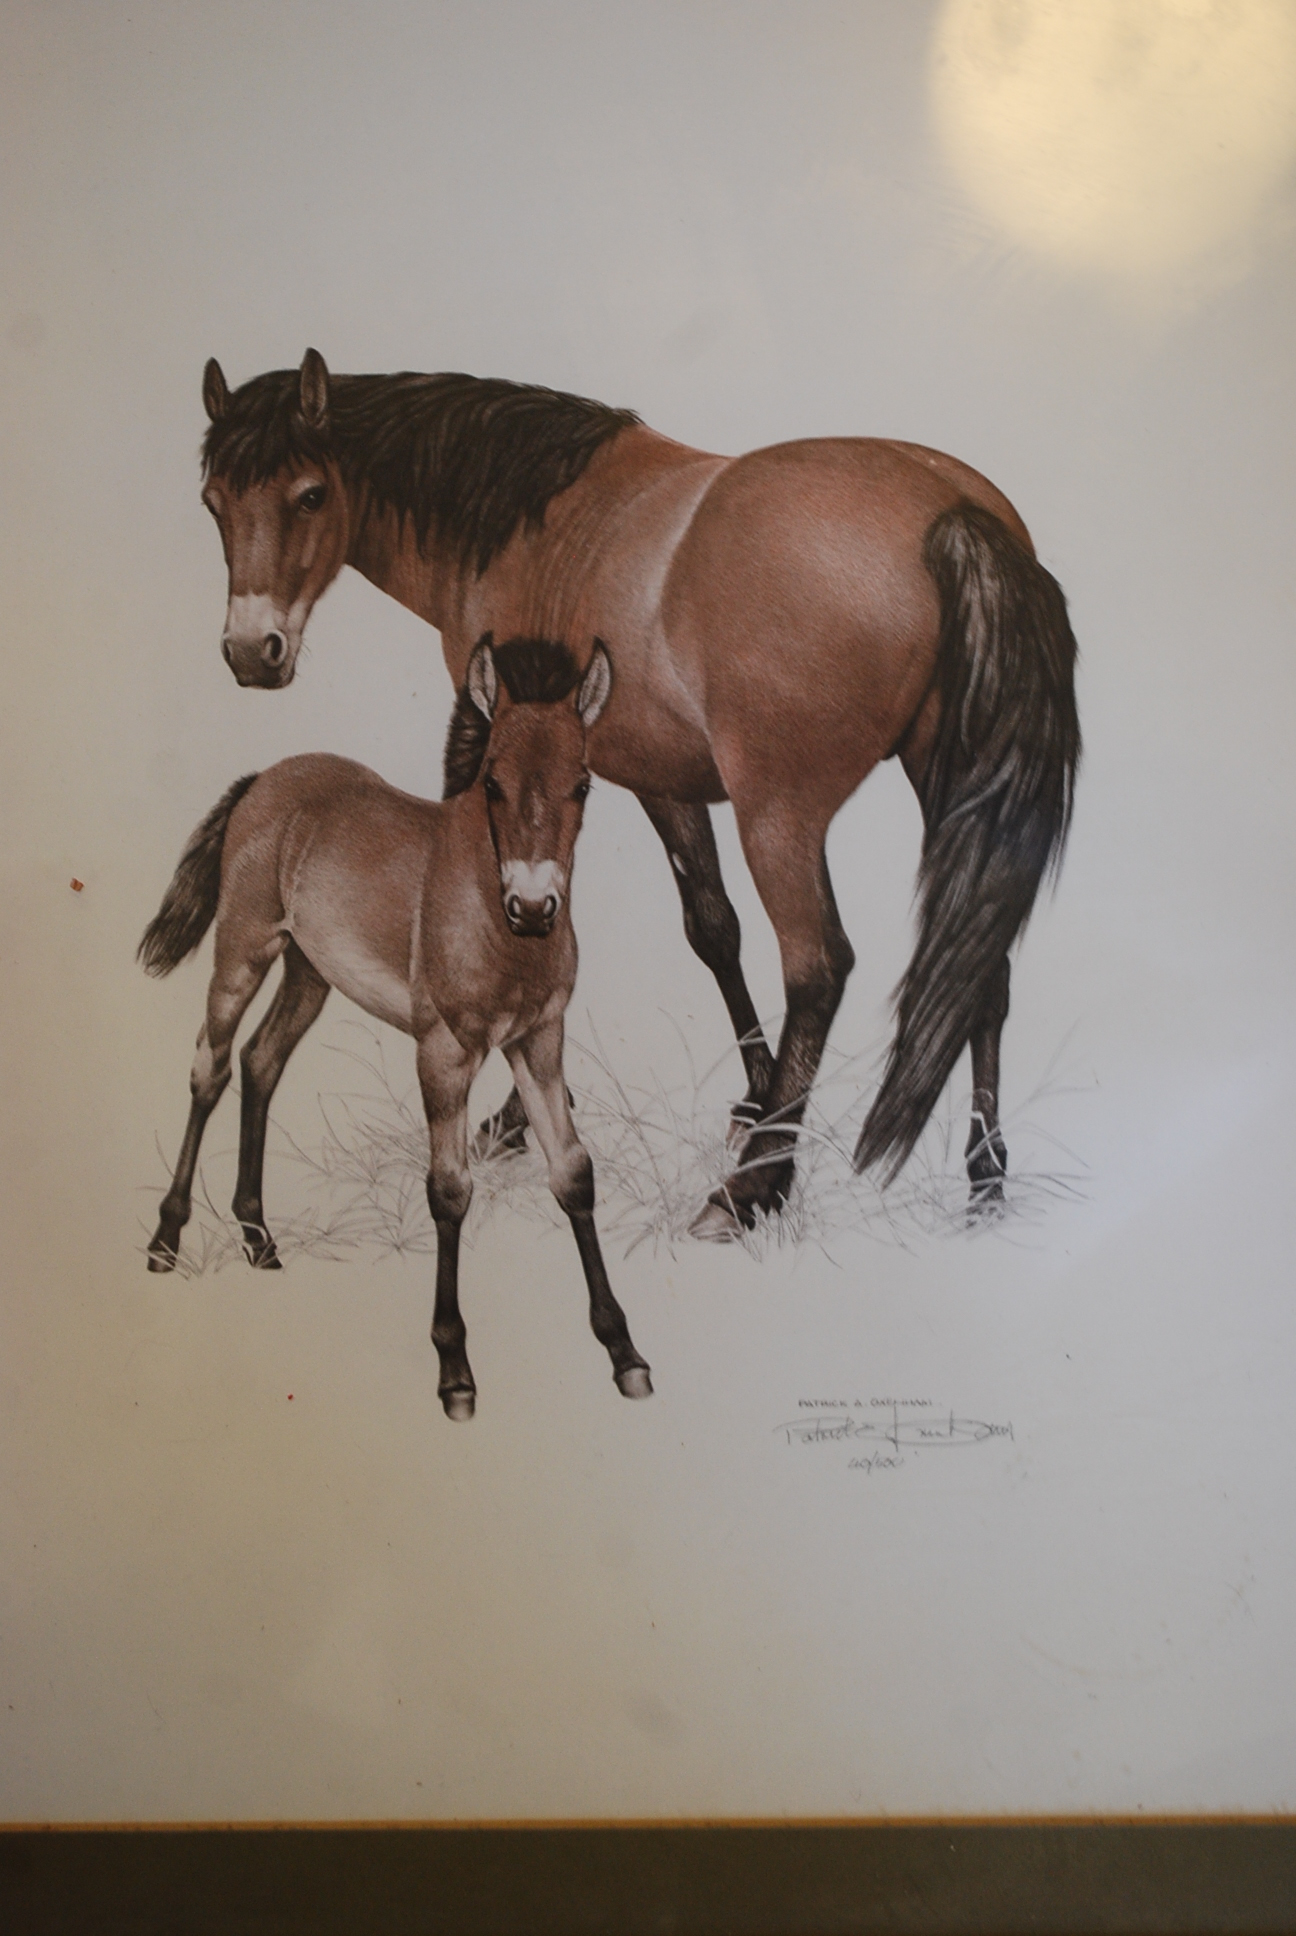 patrick oxenham a signed limited edition print of horses being